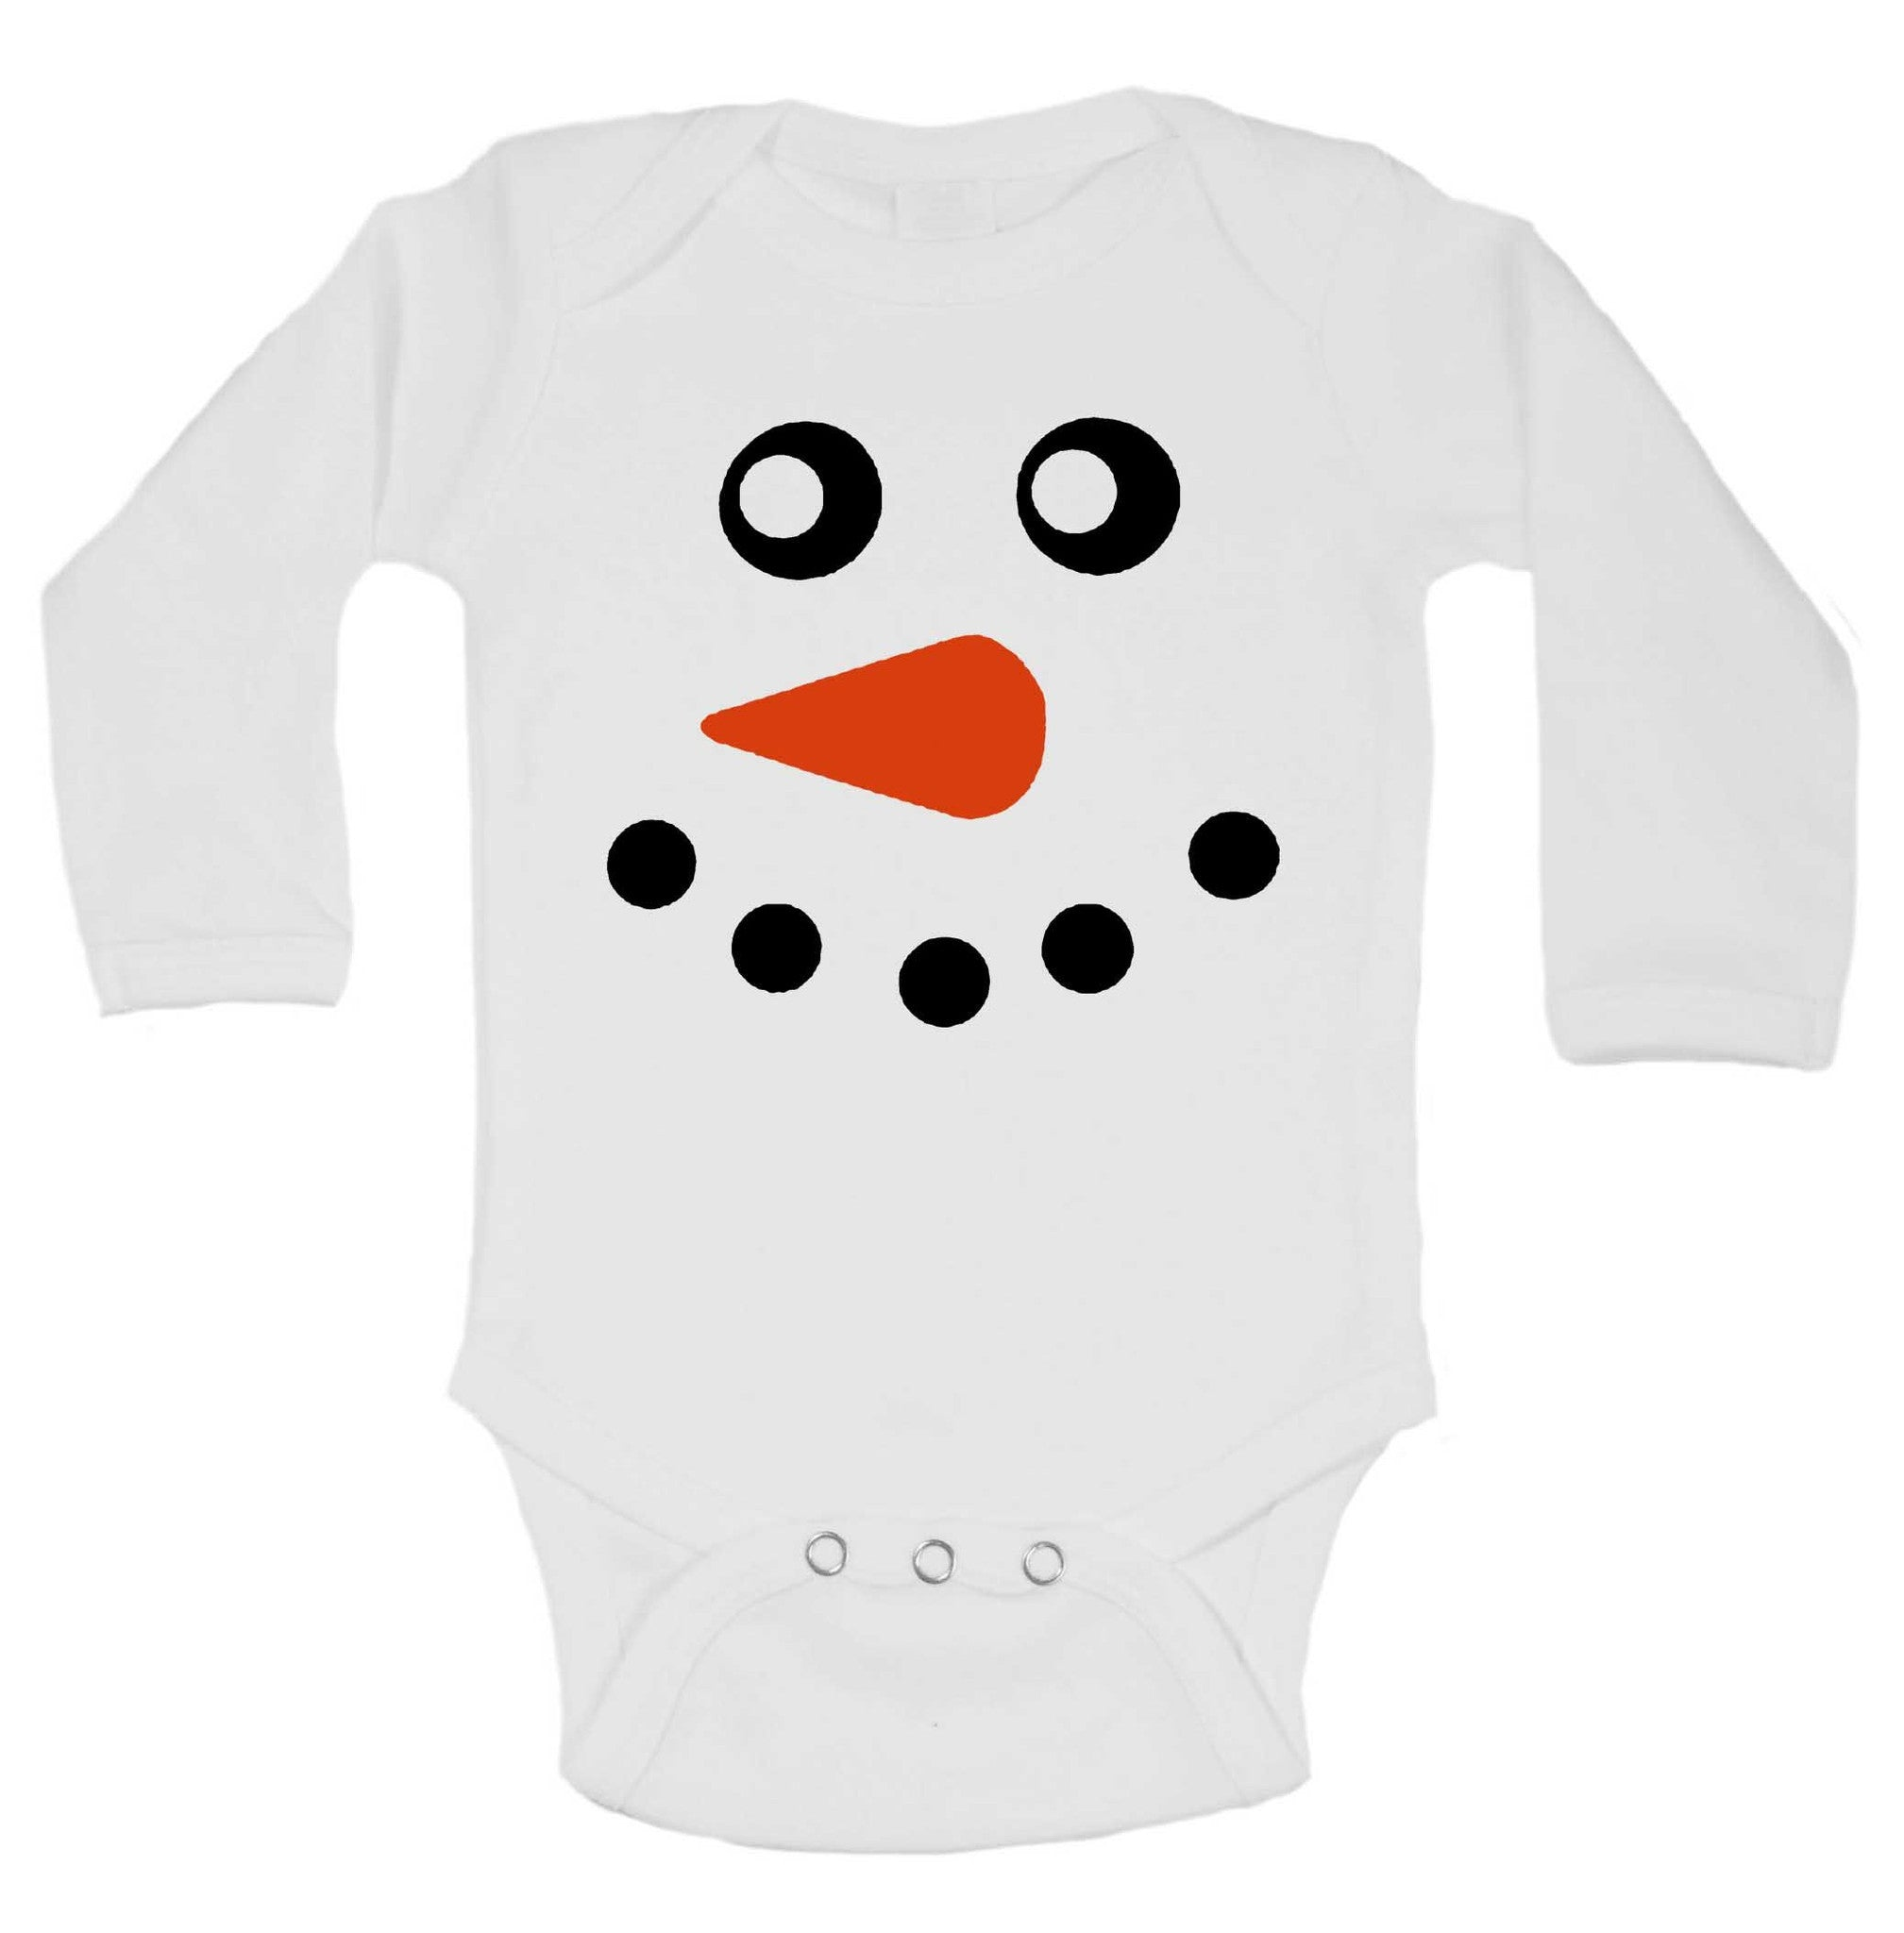 Dotted Funny Kids Onesie - 233 - Funny Shirts Tank Tops Burnouts and Triblends  - 1